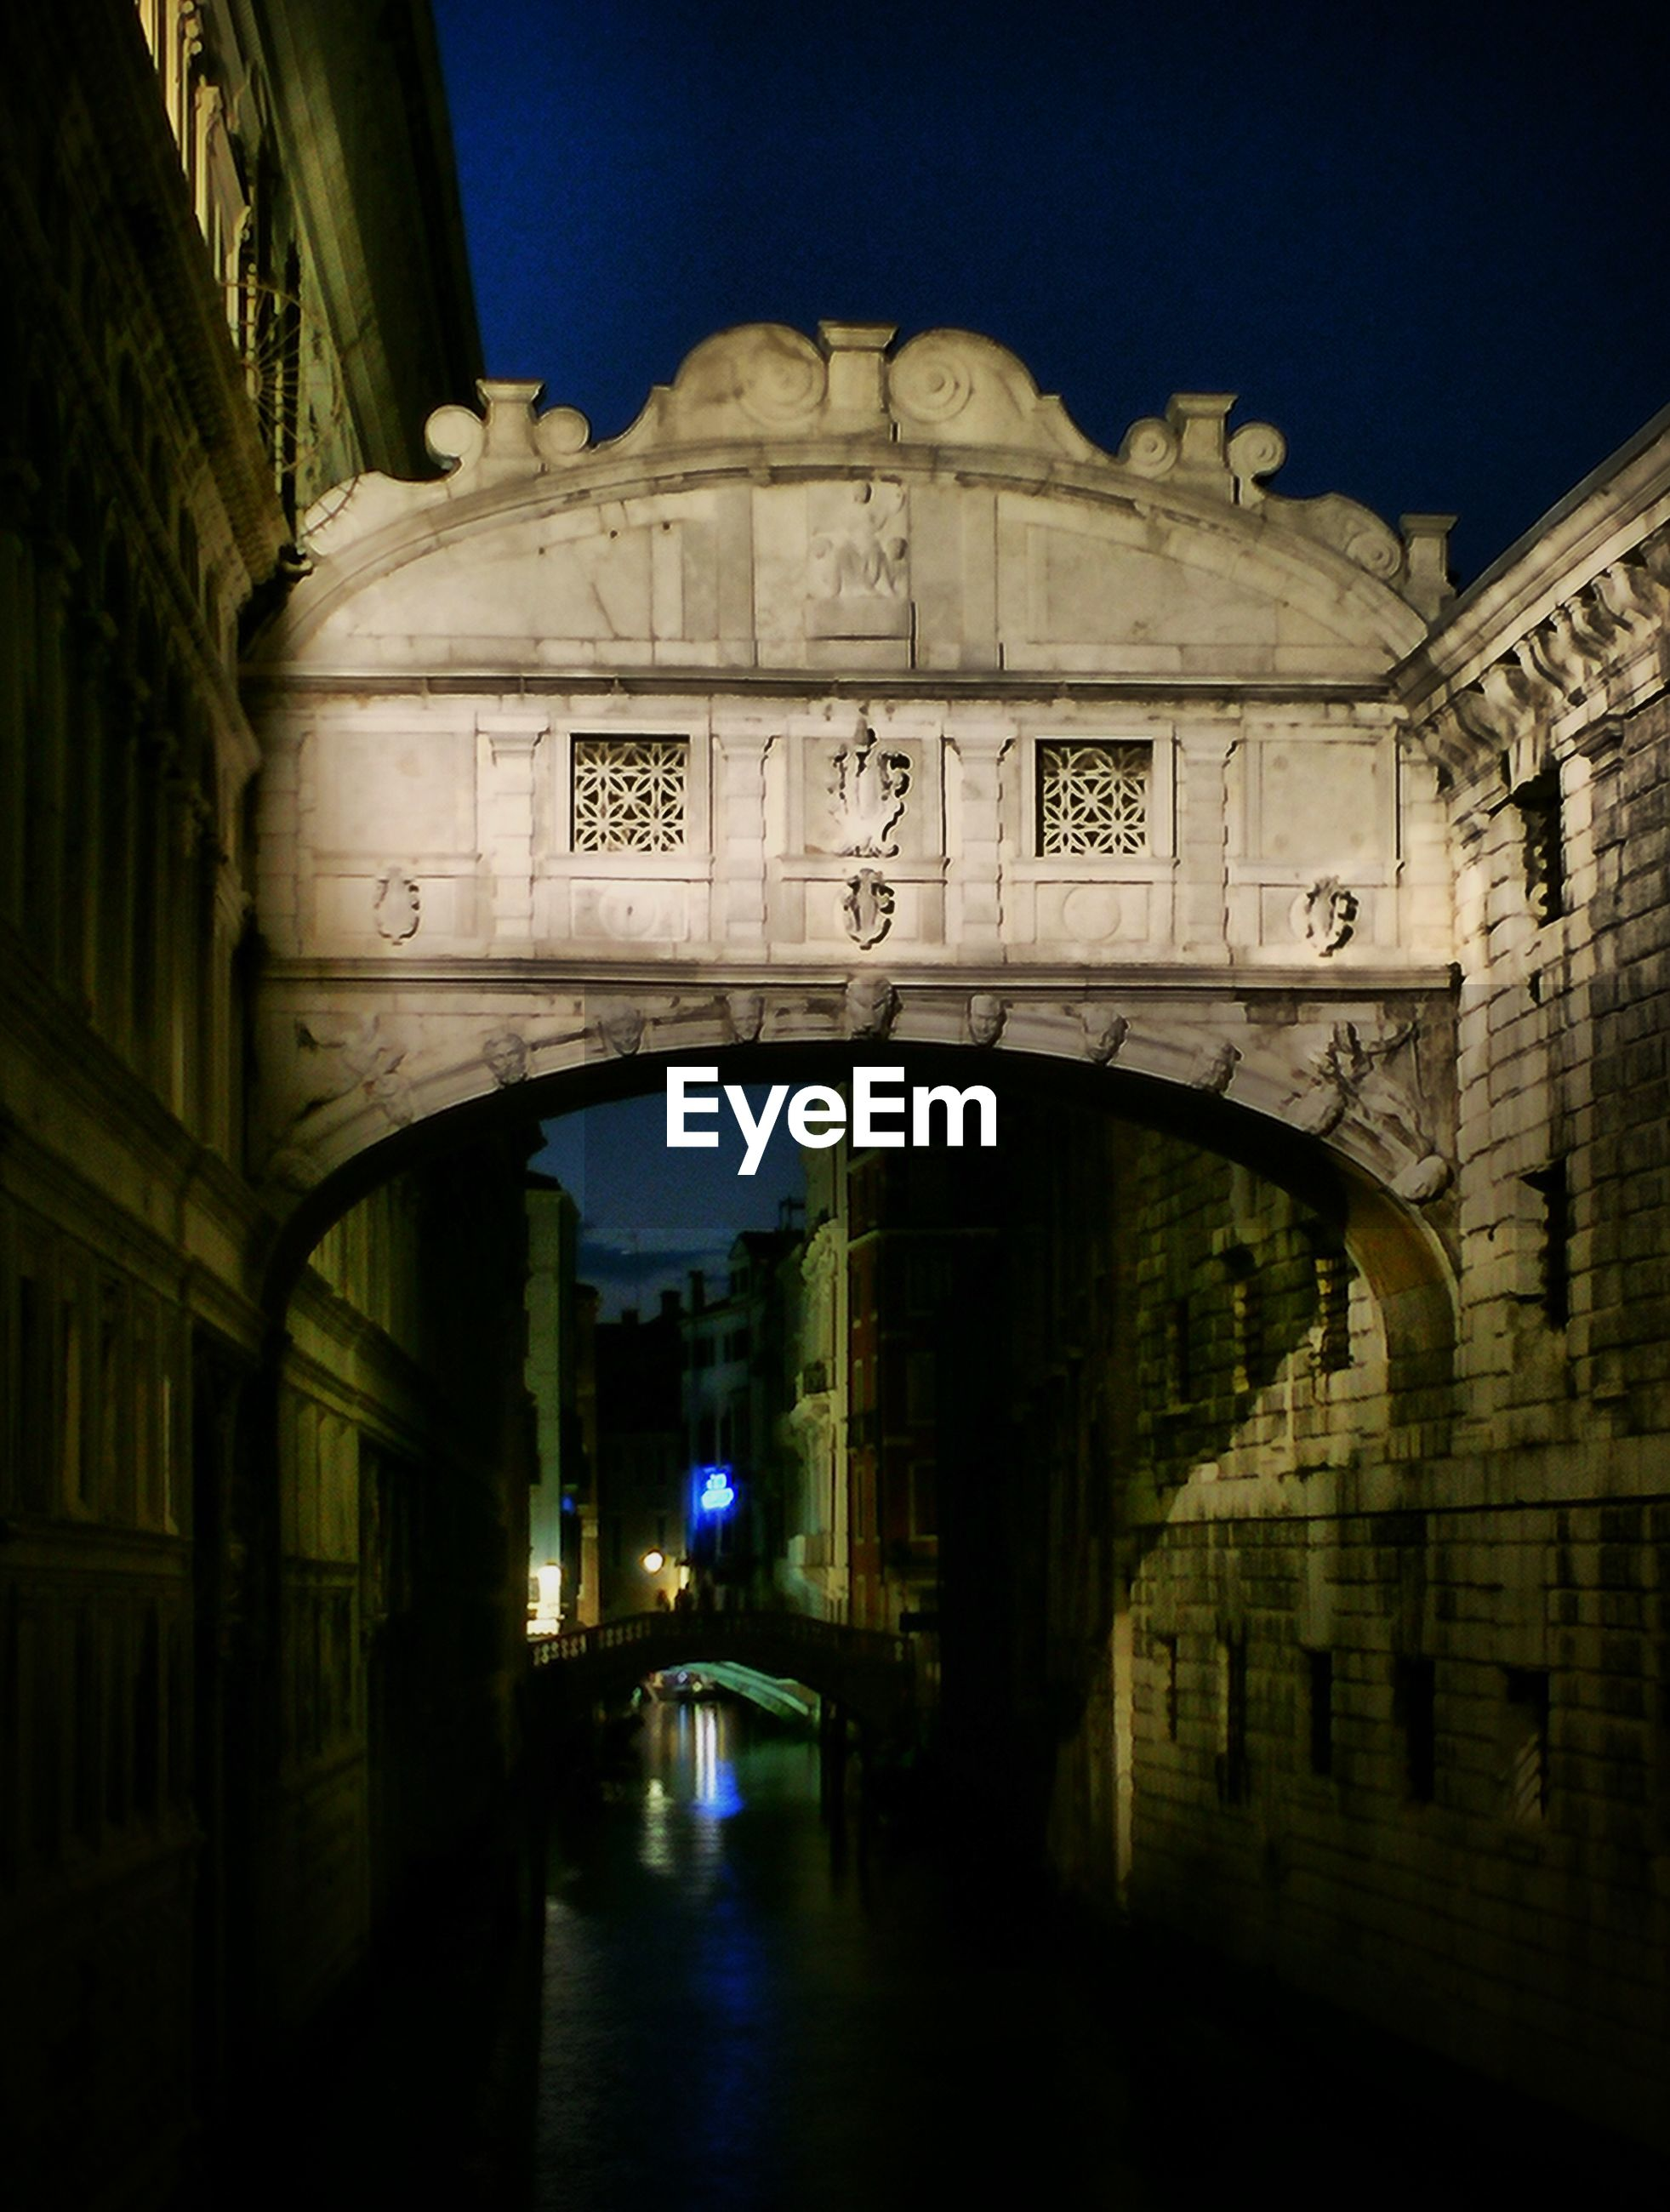 Bridge of sighs over canal at night